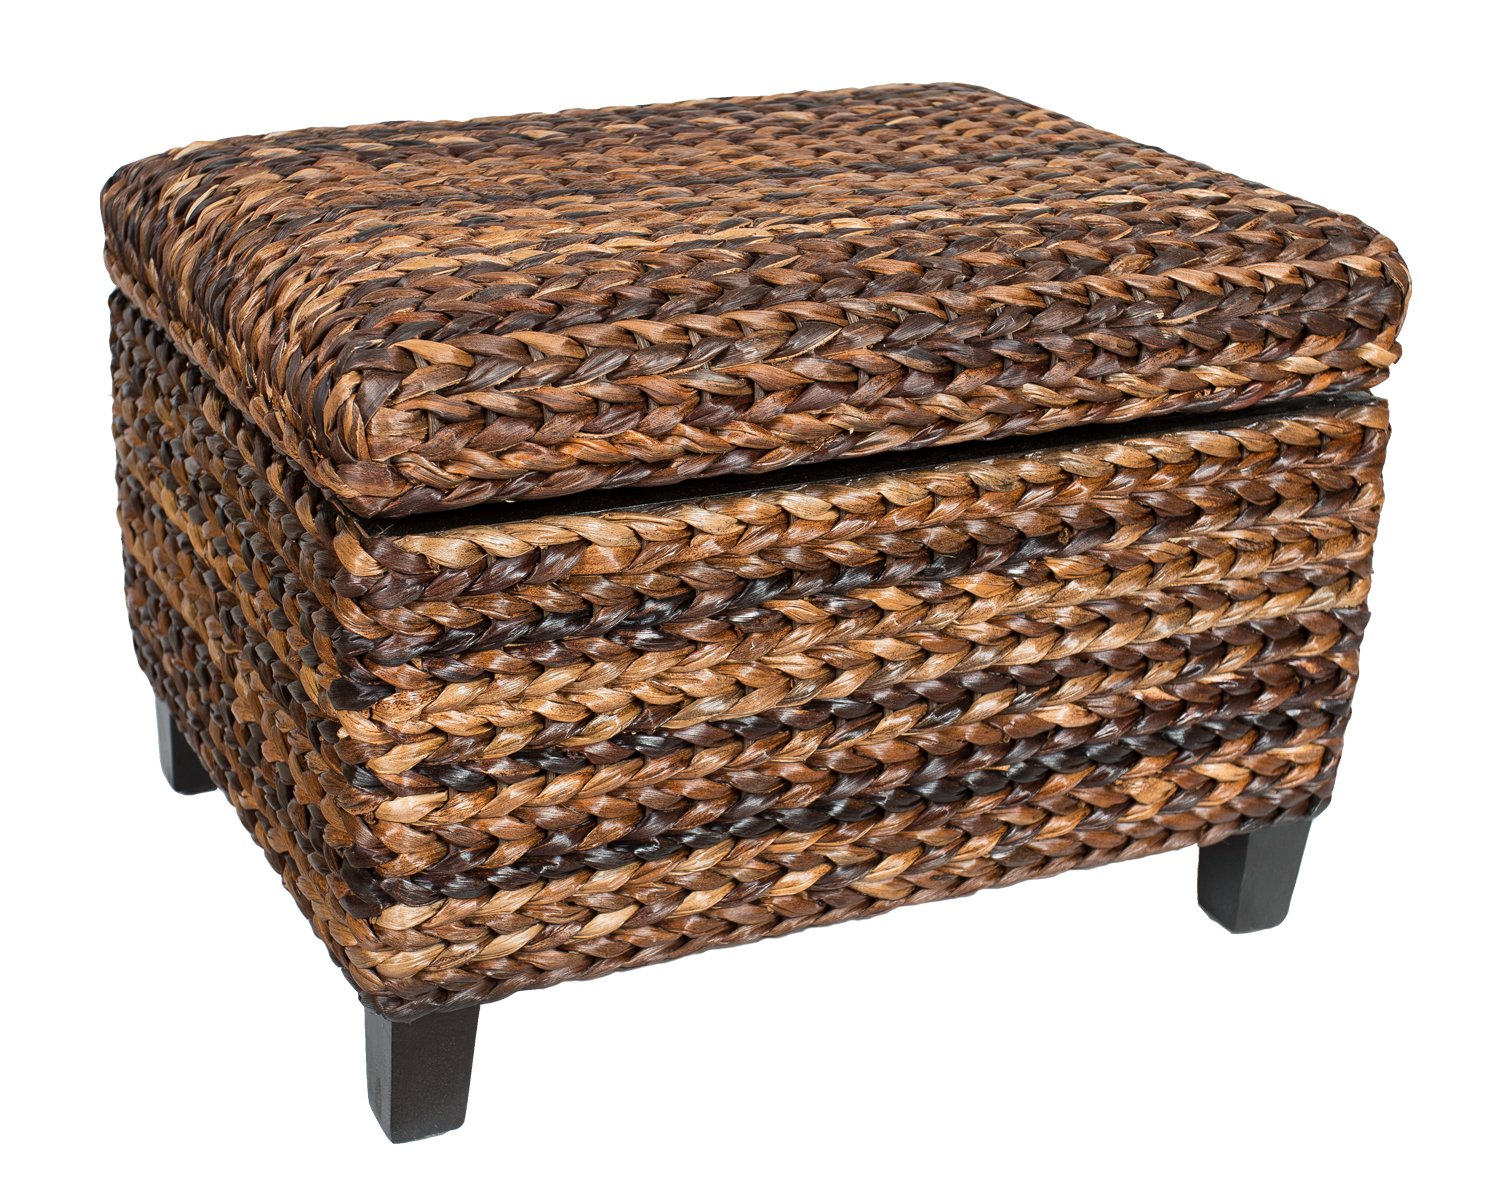 birdrock home woven seagrass storage ottoman with safety. Black Bedroom Furniture Sets. Home Design Ideas